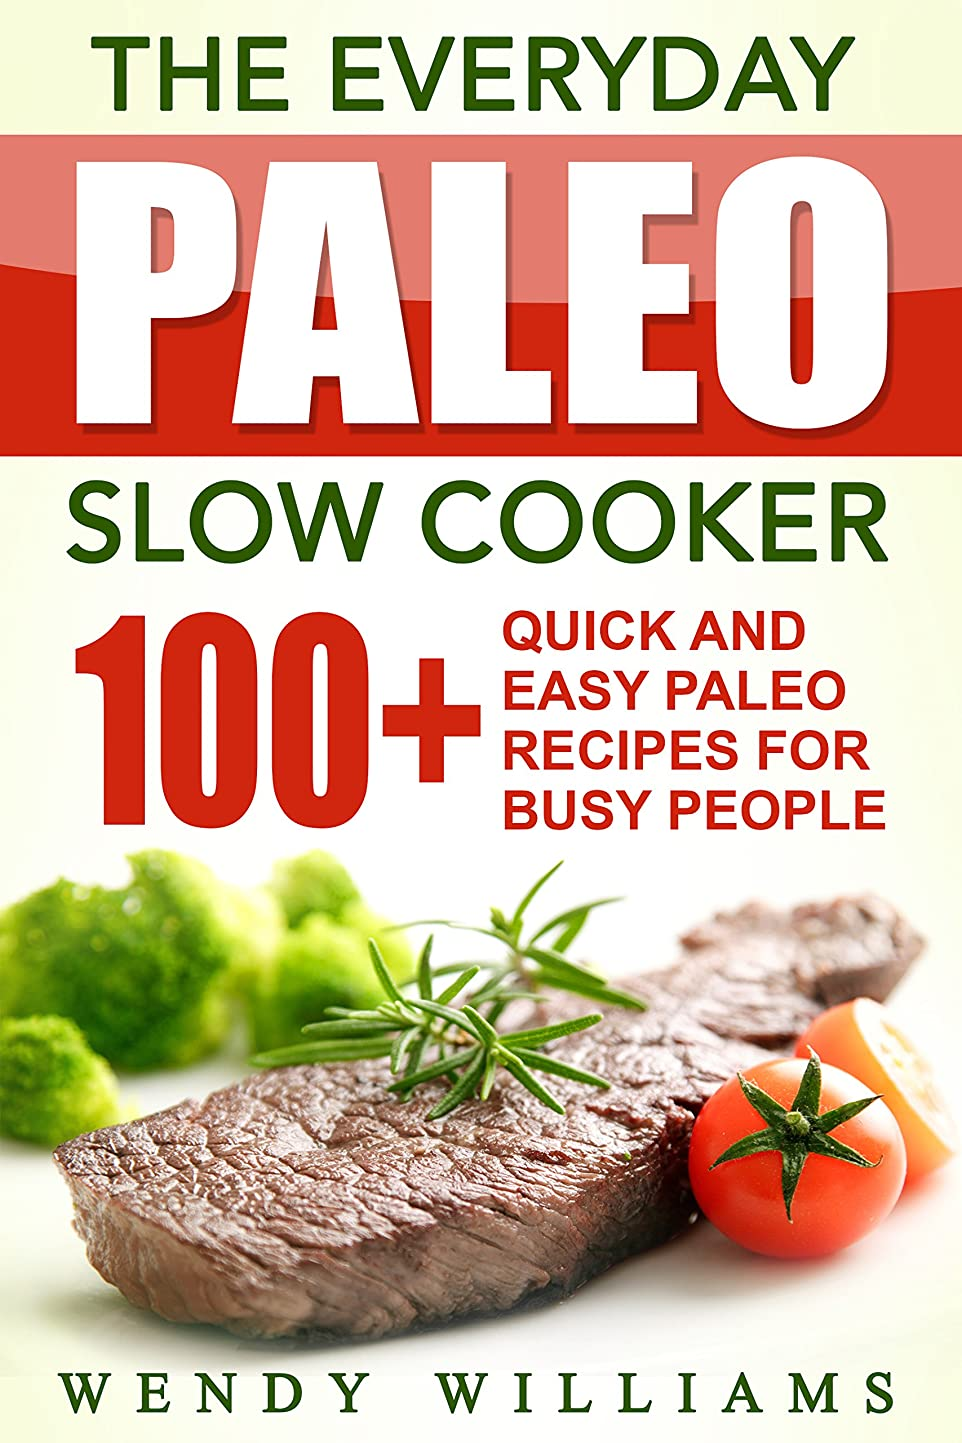 The Everyday Paleo Slow Cooker: 100+ Quick and Easy Paleo Slow Cooker Recipes for Busy People (paleo diet, paleo, paleo solution, paleo diet cookbook, ... ebooks, paleo diet kindle) (English Edition)